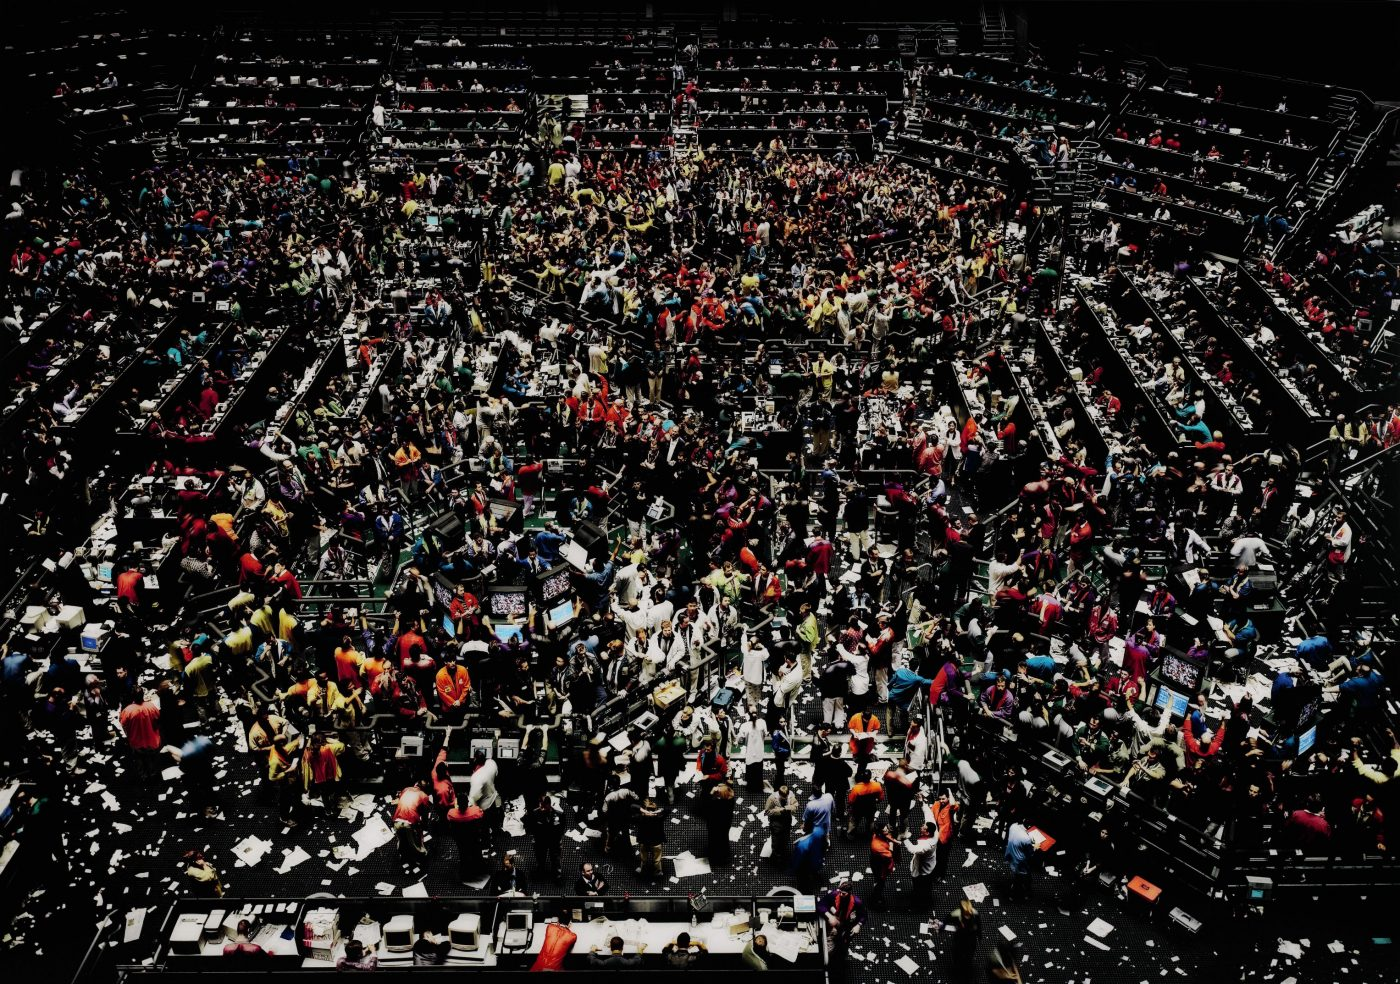 Andreas Gursky, Chicago board of trade III, 1999-2009